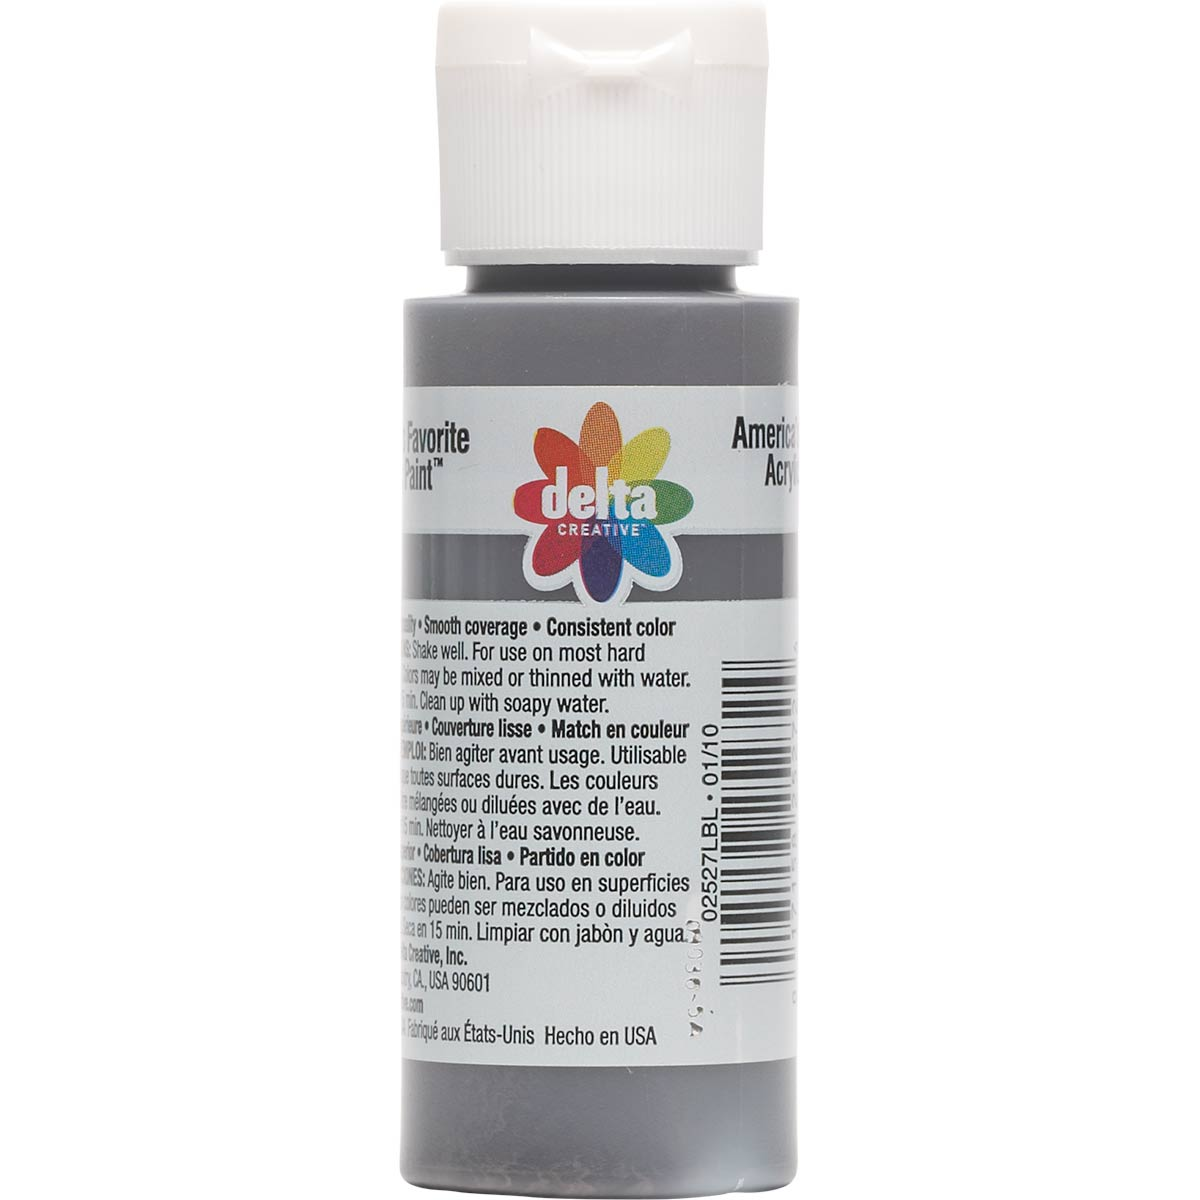 Delta Ceramcoat ® Acrylic Paint - Dark Burnt Umber, 2 oz. - 025270202W